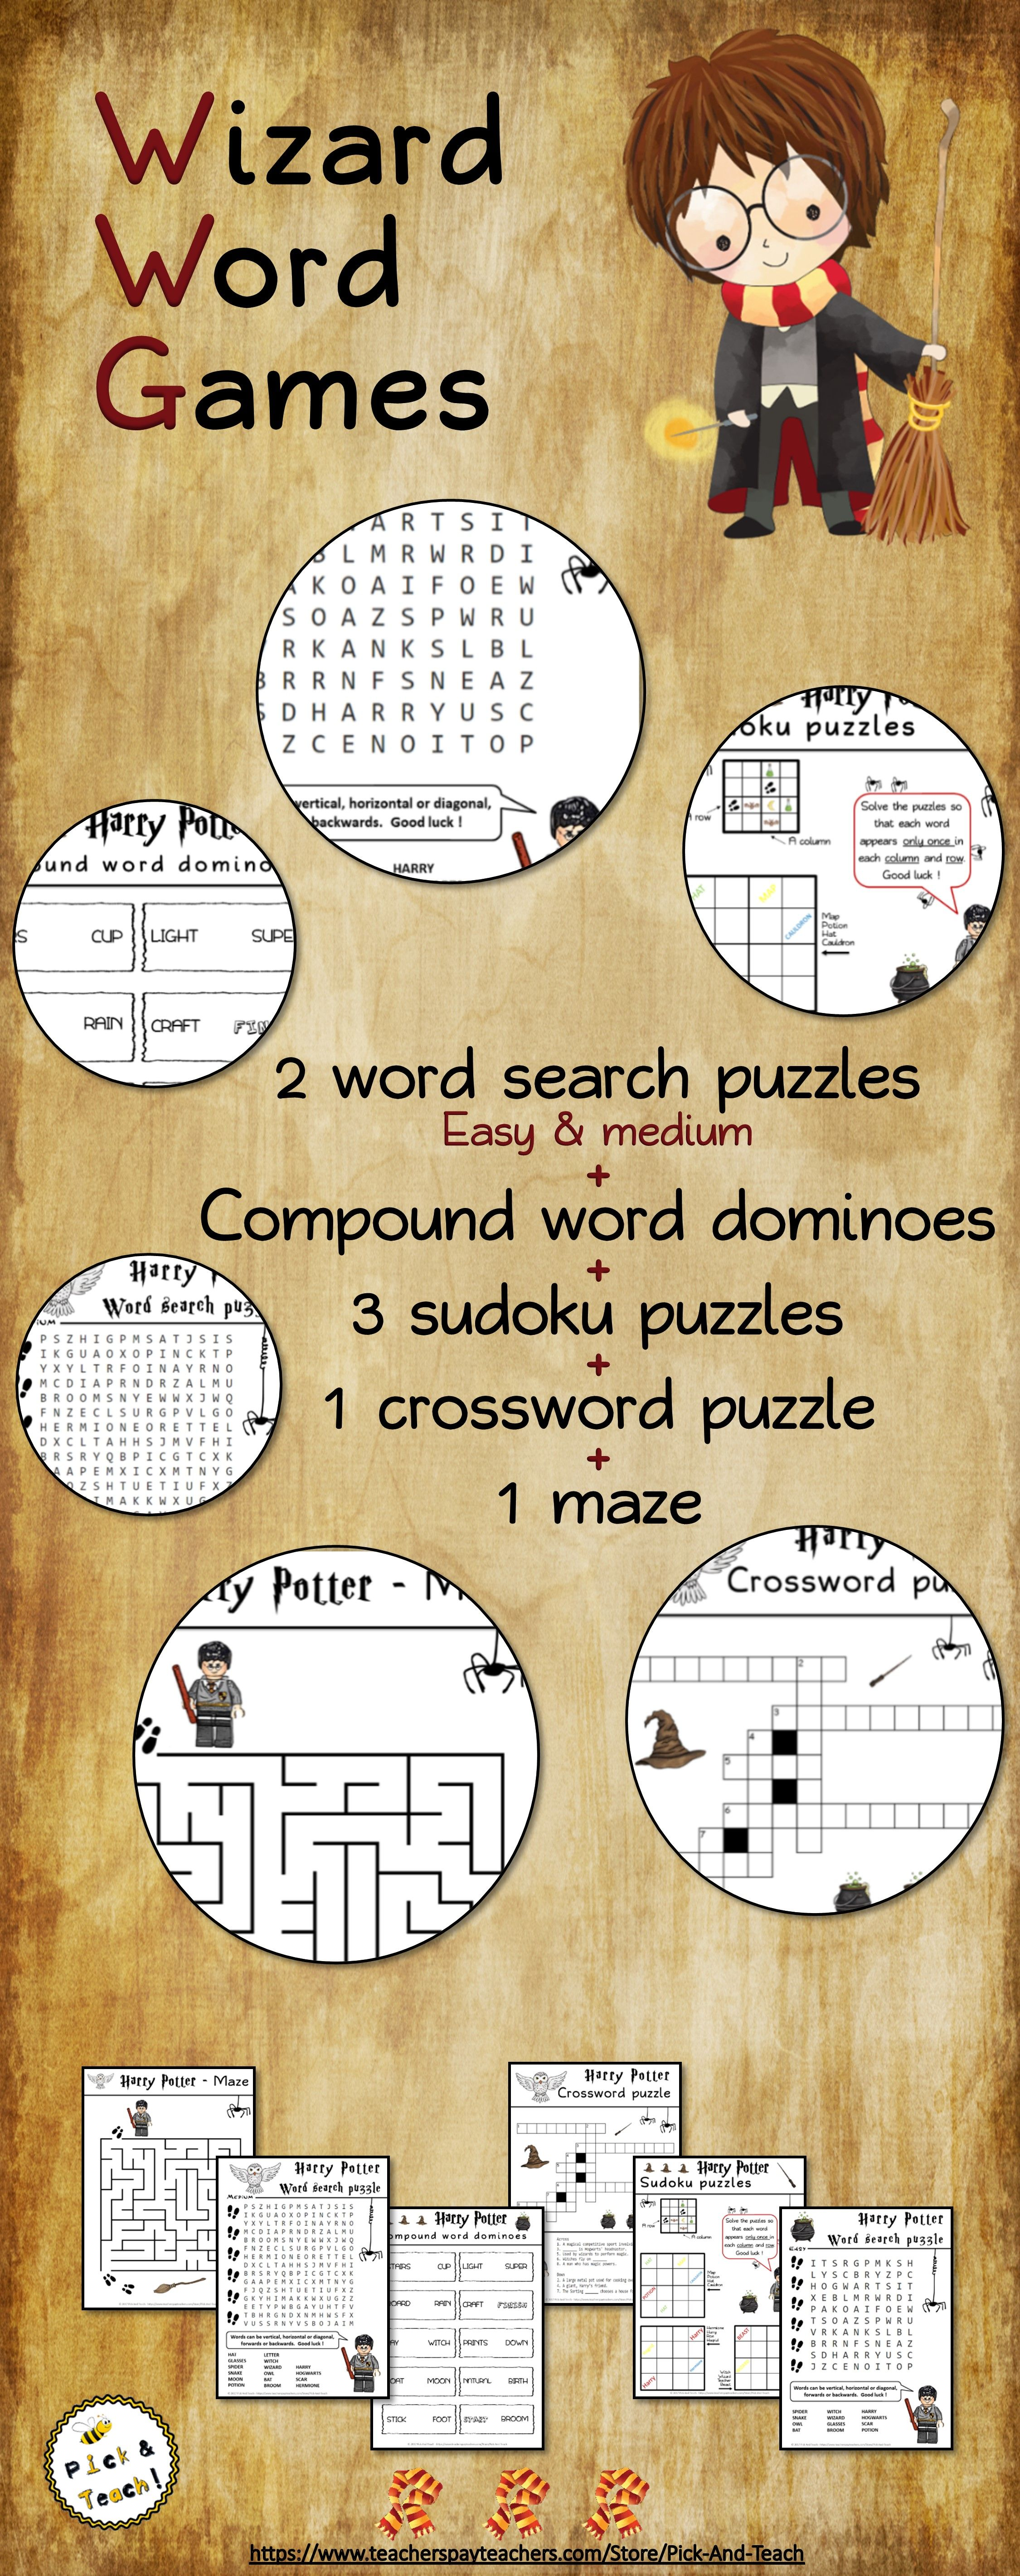 Wizard Word Games For Harry Potter Fans